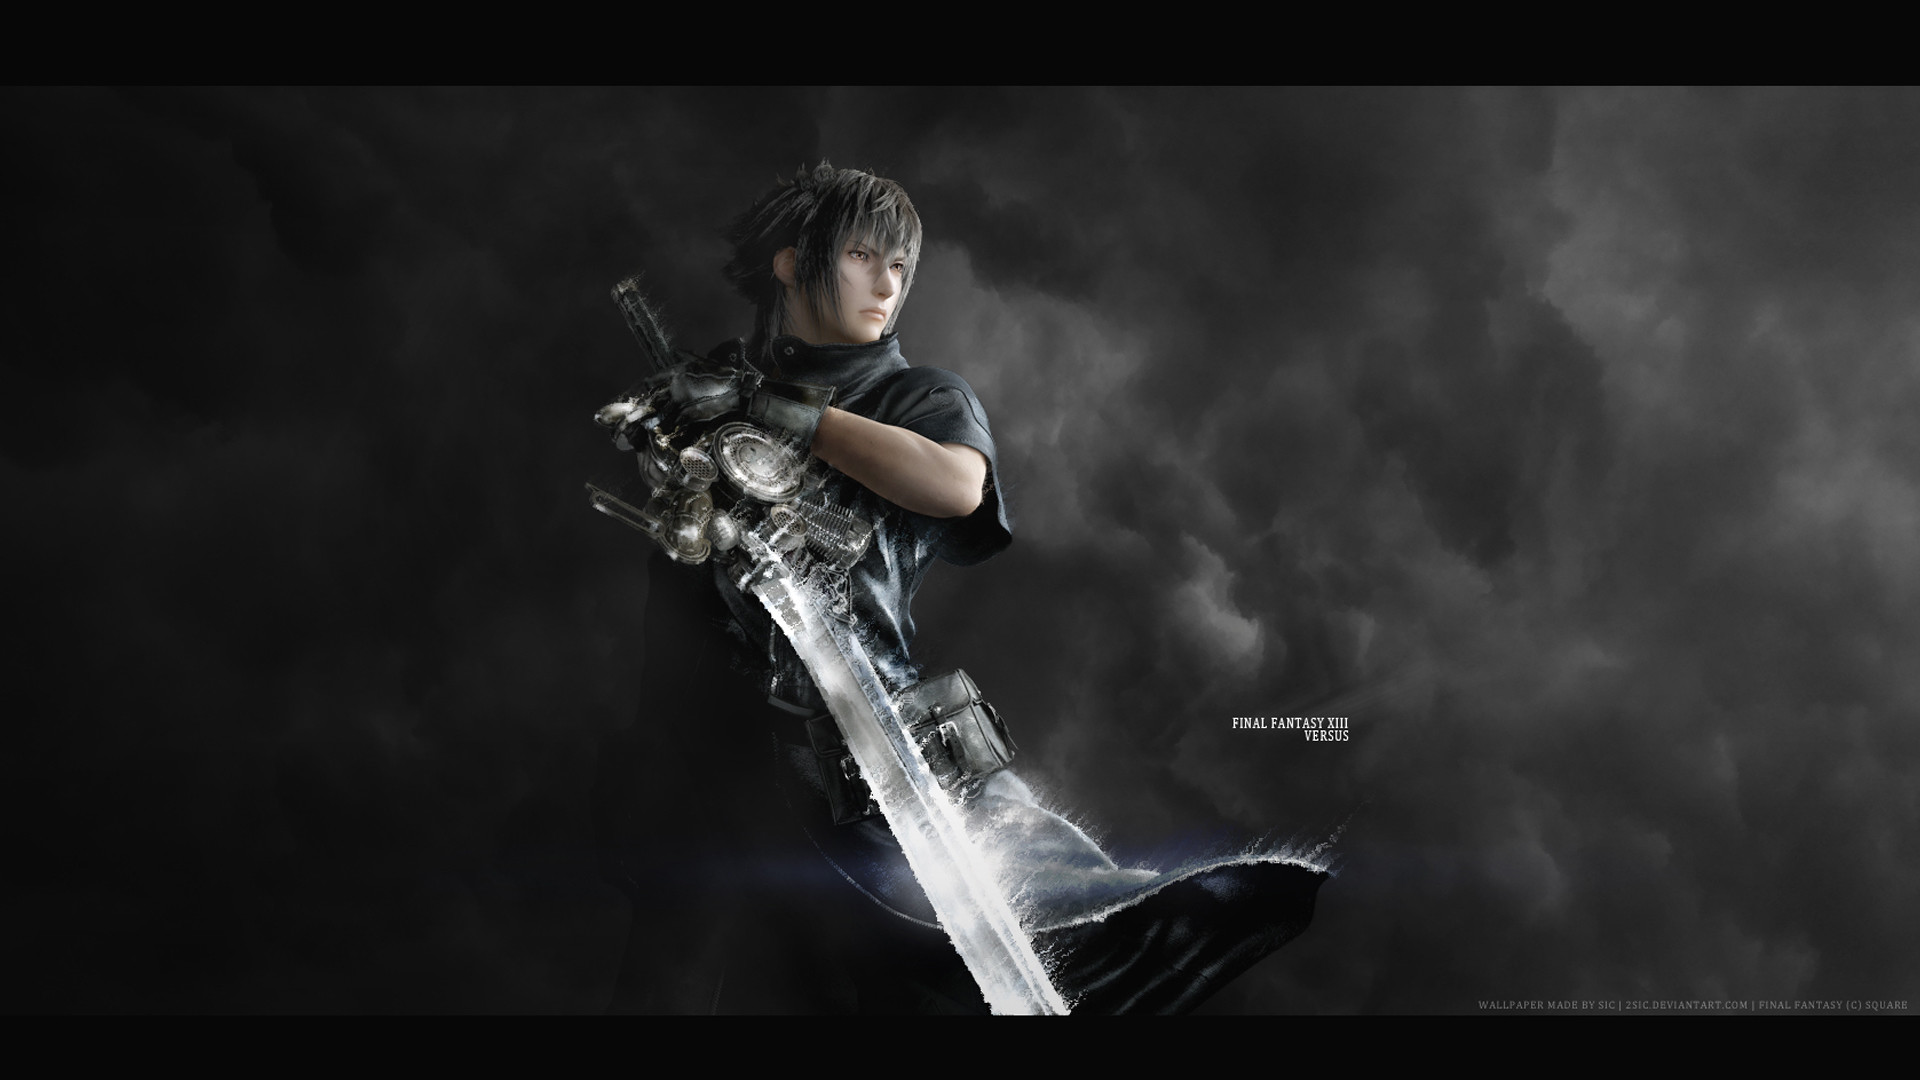 Final Fantasy xv wallpapers and images – wallpapers, pictures, photos .